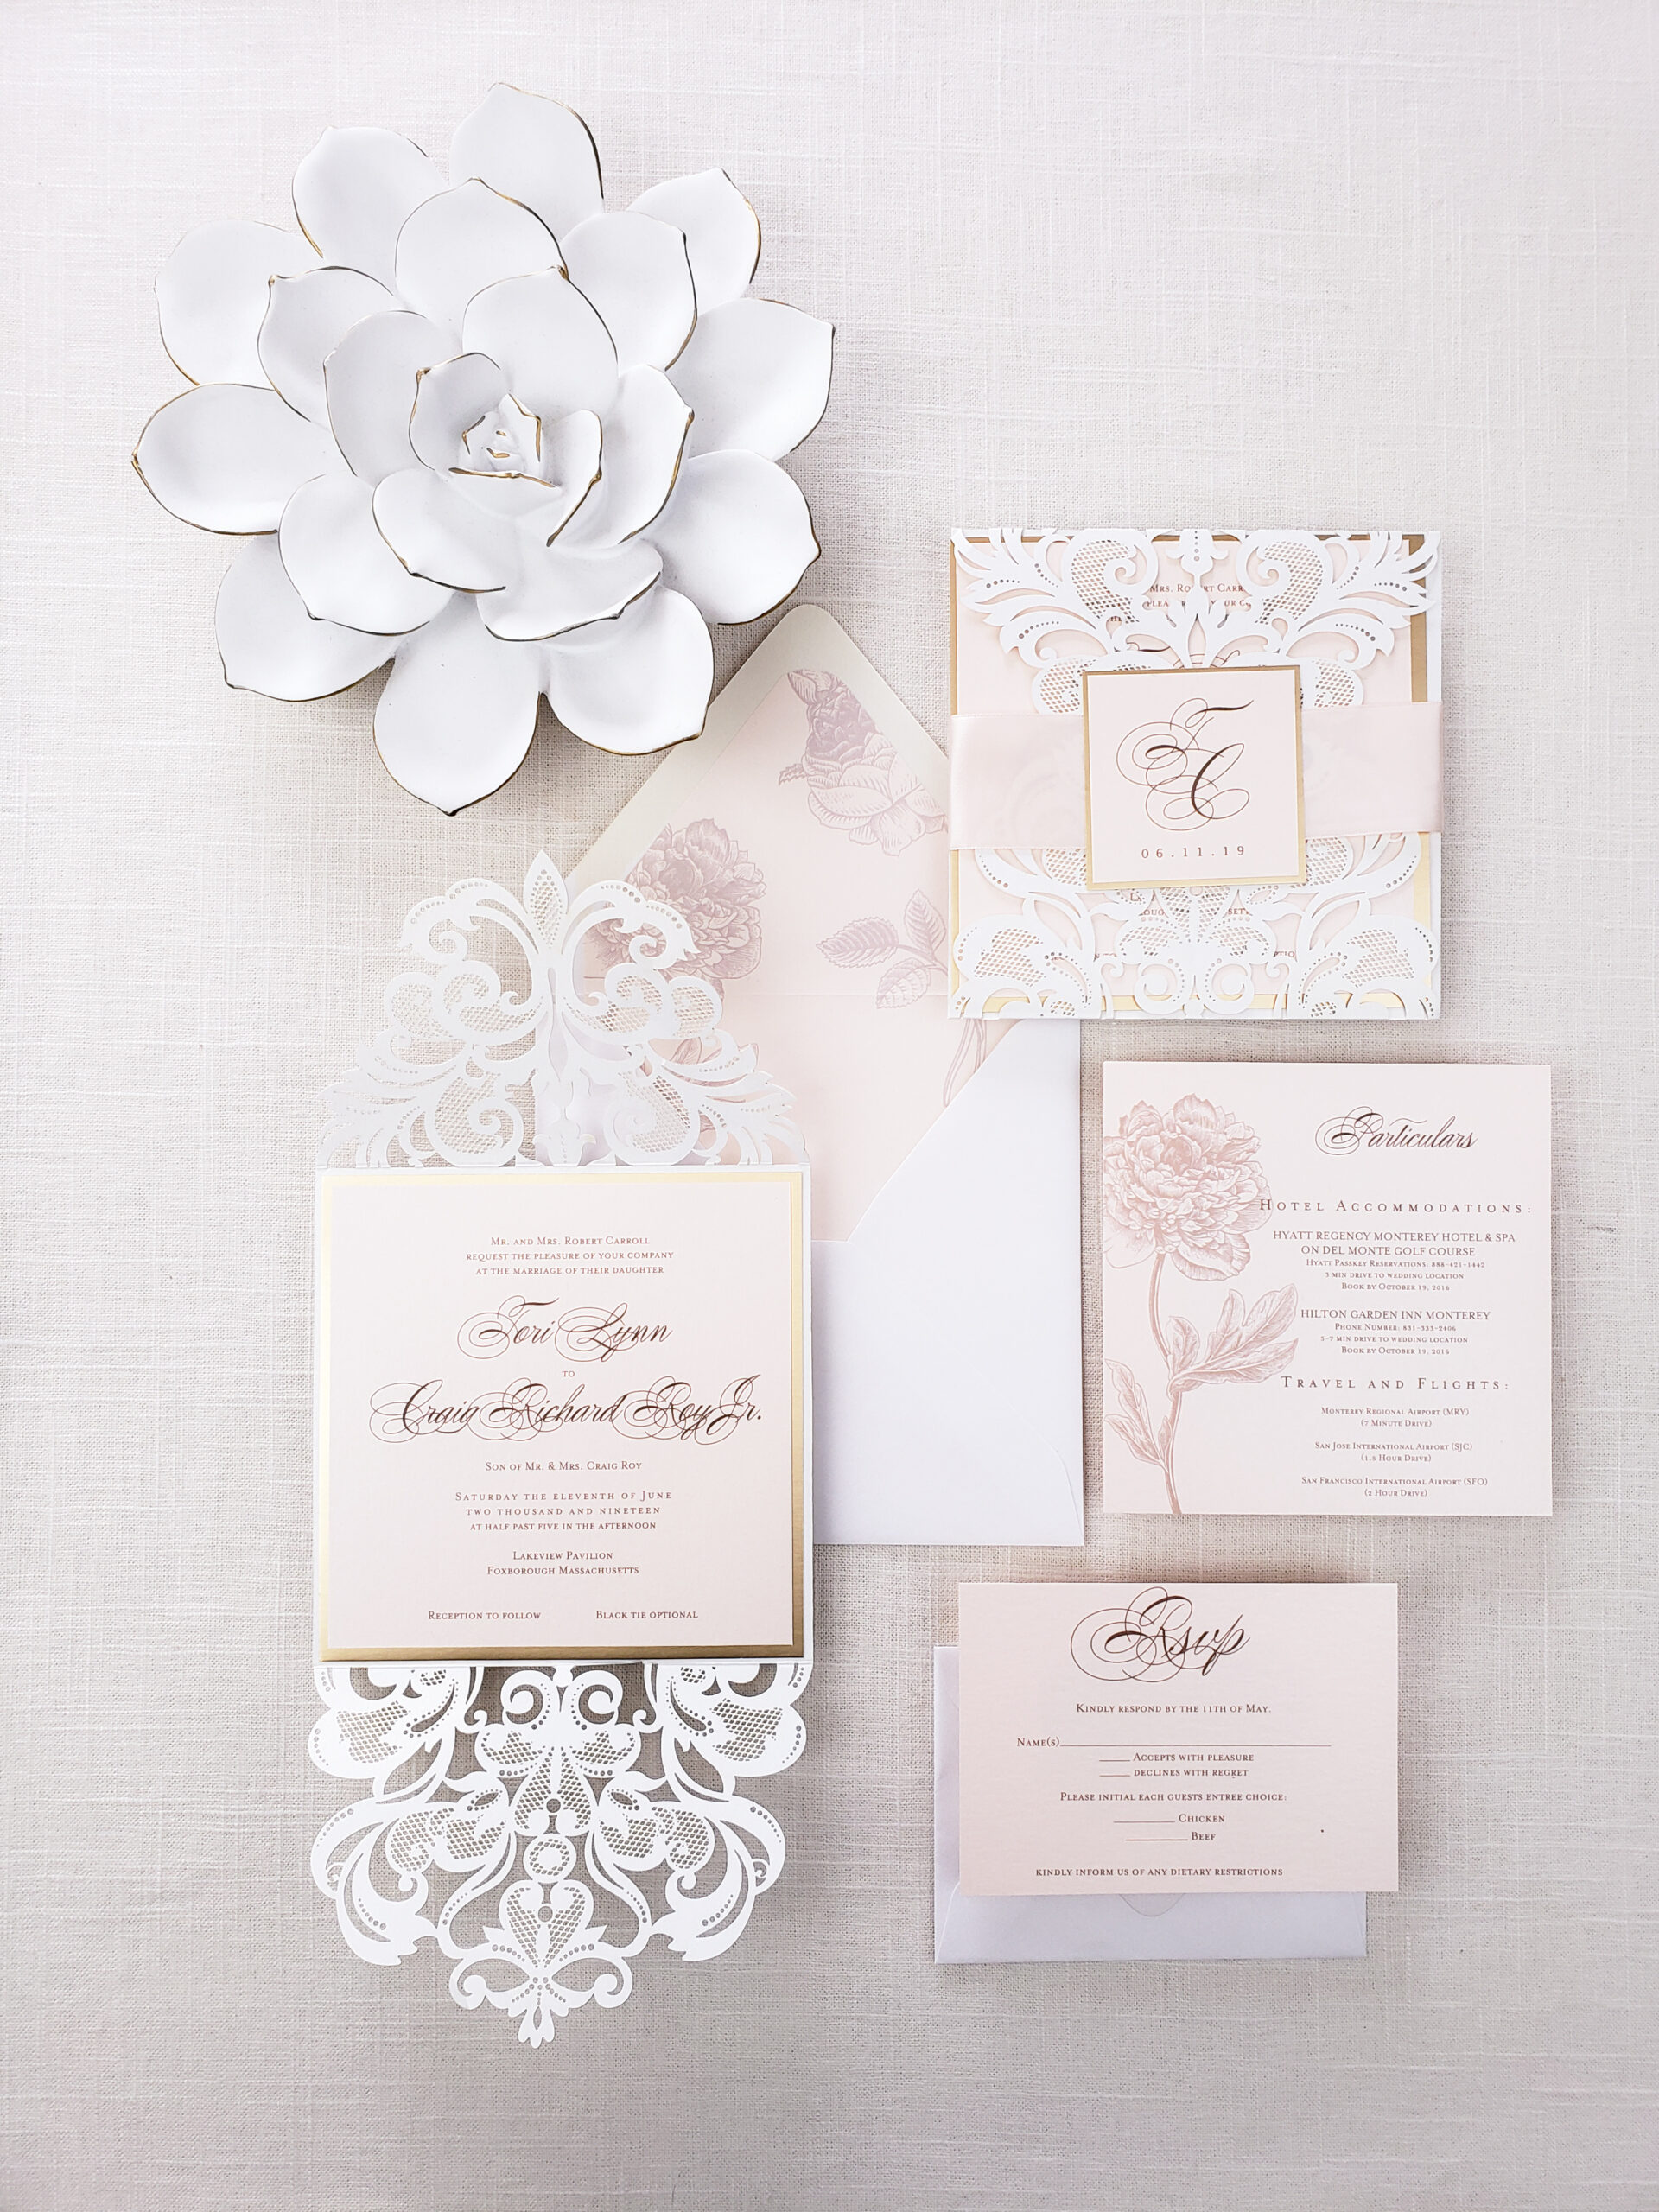 Modern Chic Wedding,Enevlopes+insert cards with printing 50pieces Gold Laser Cut Wedding Invitations,Rustic Wedding Invite,Floral optional